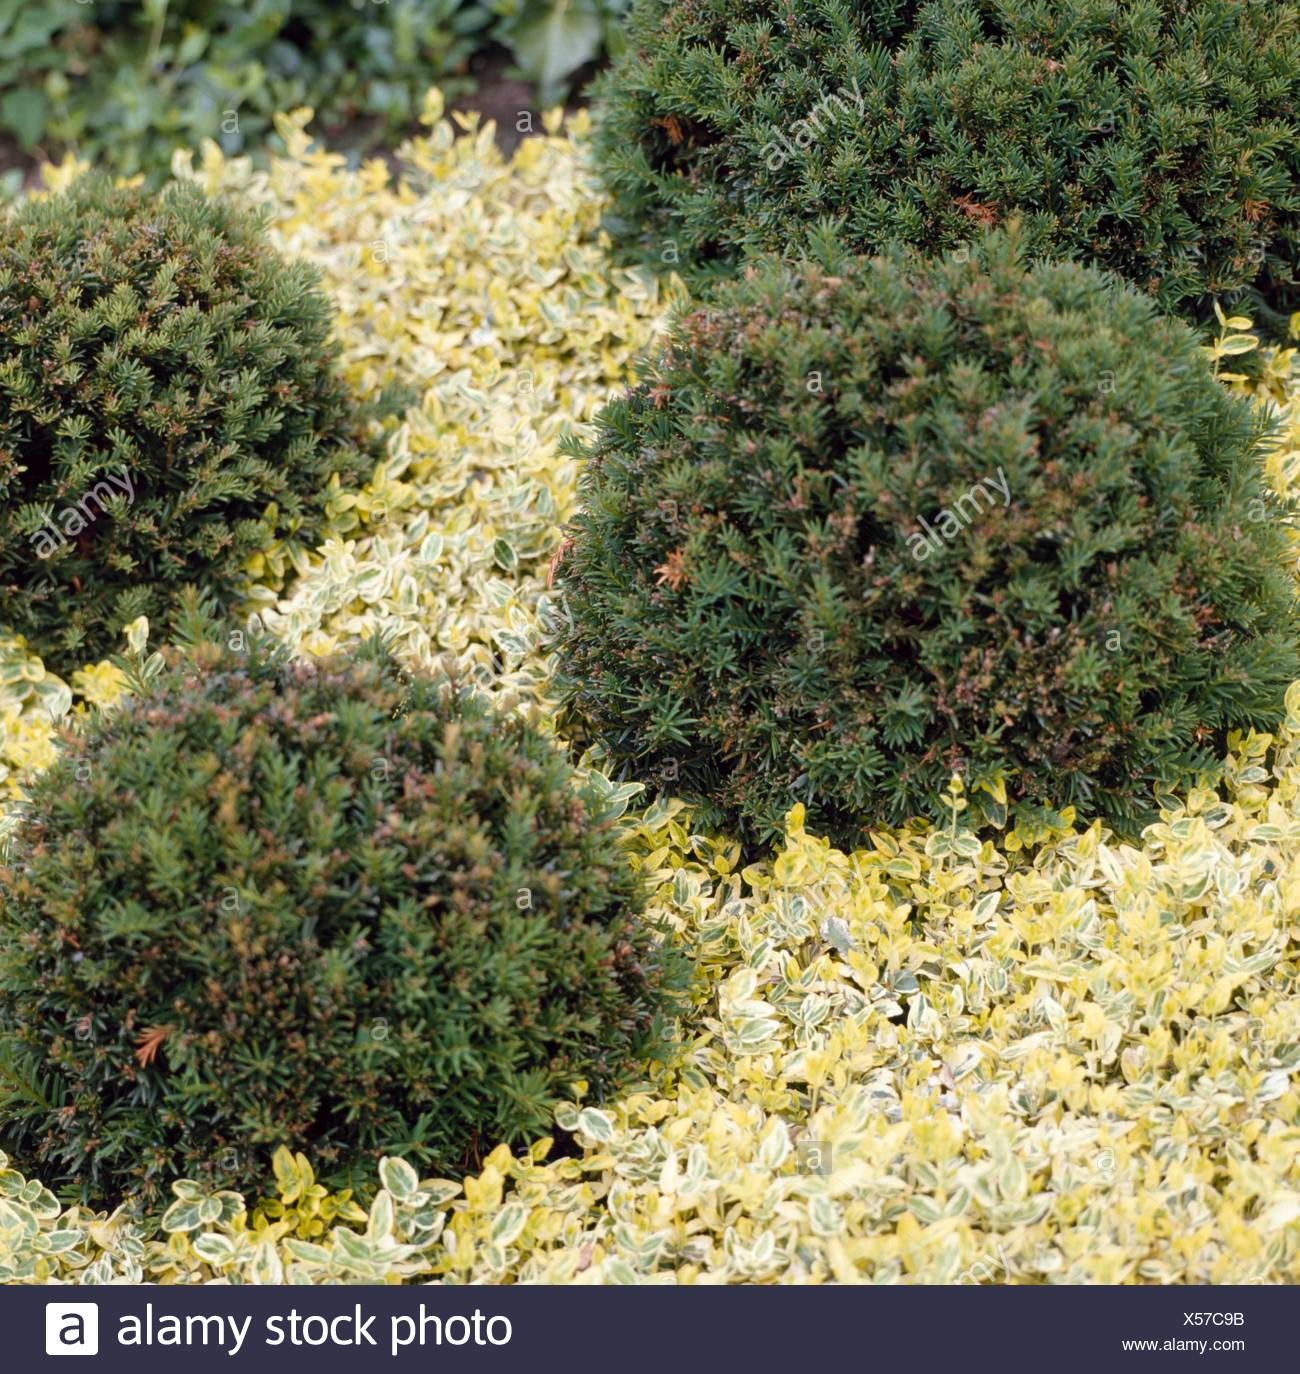 Taxus x media - `Hillii' with Euonymus fortunei `Emerald `n' Gold' (Photographer: MJK)   CON072398 - Stock Image